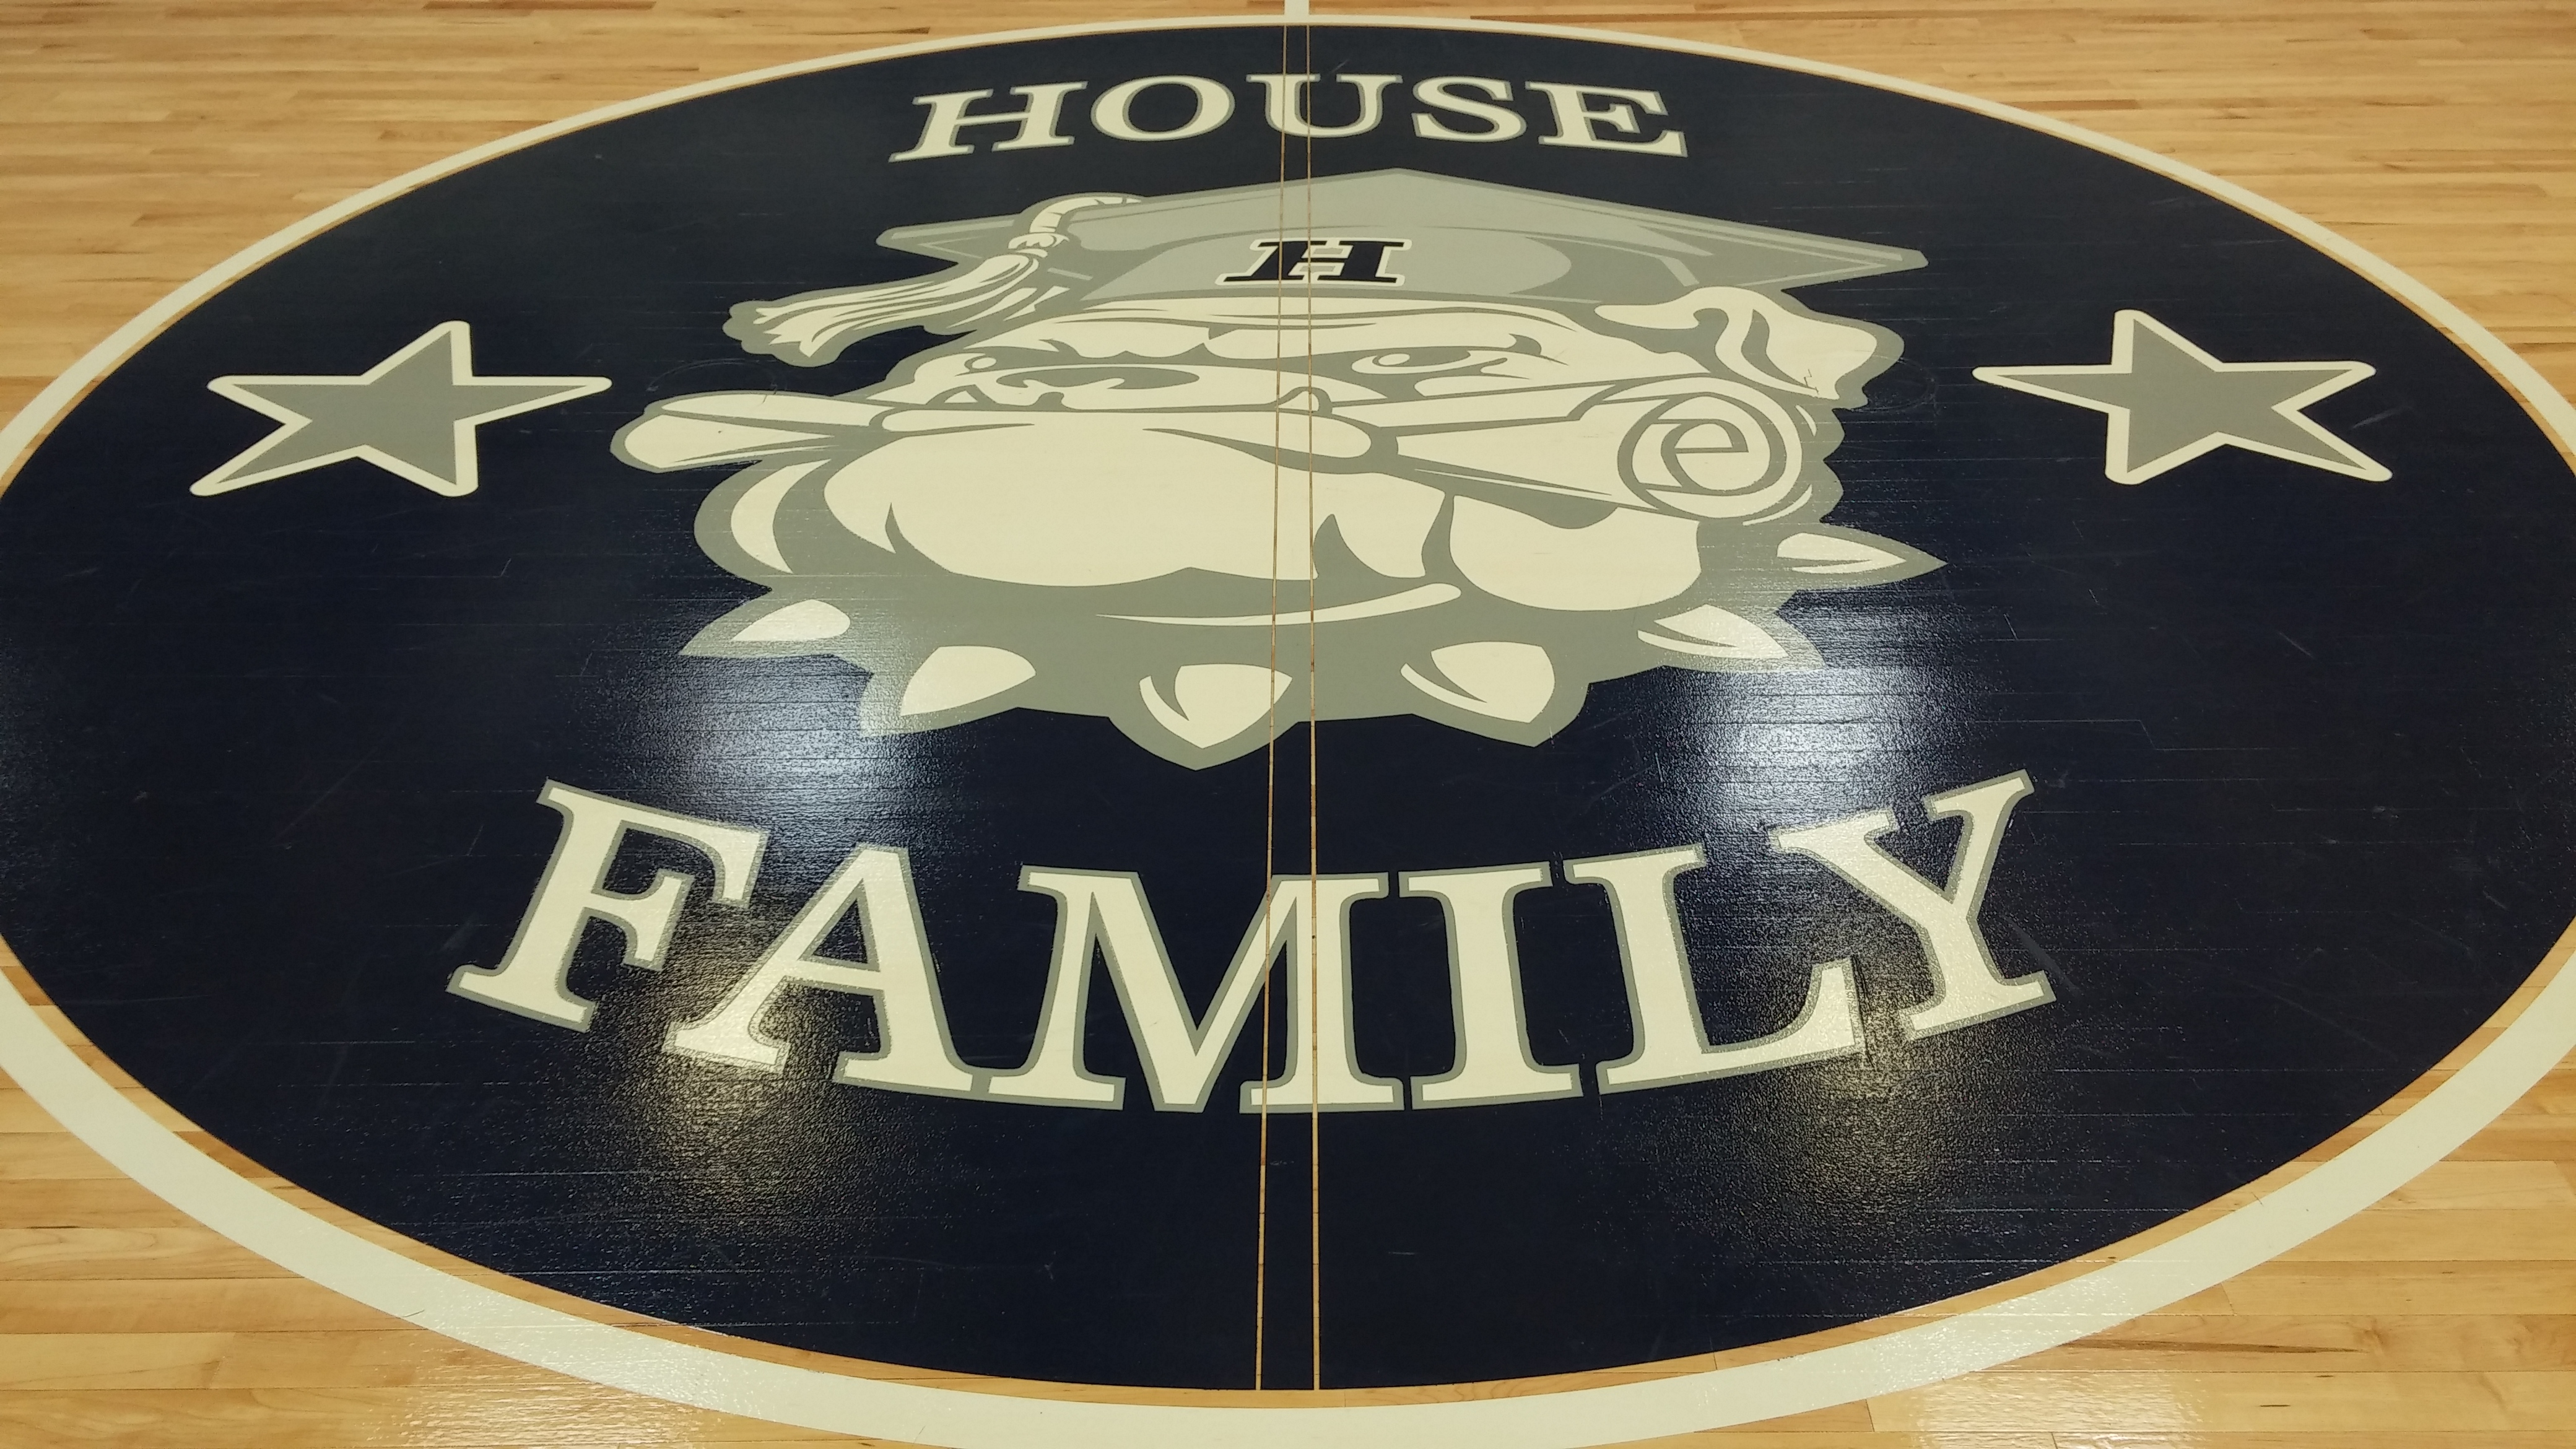 Logo - House Family Bull Dog.JPG